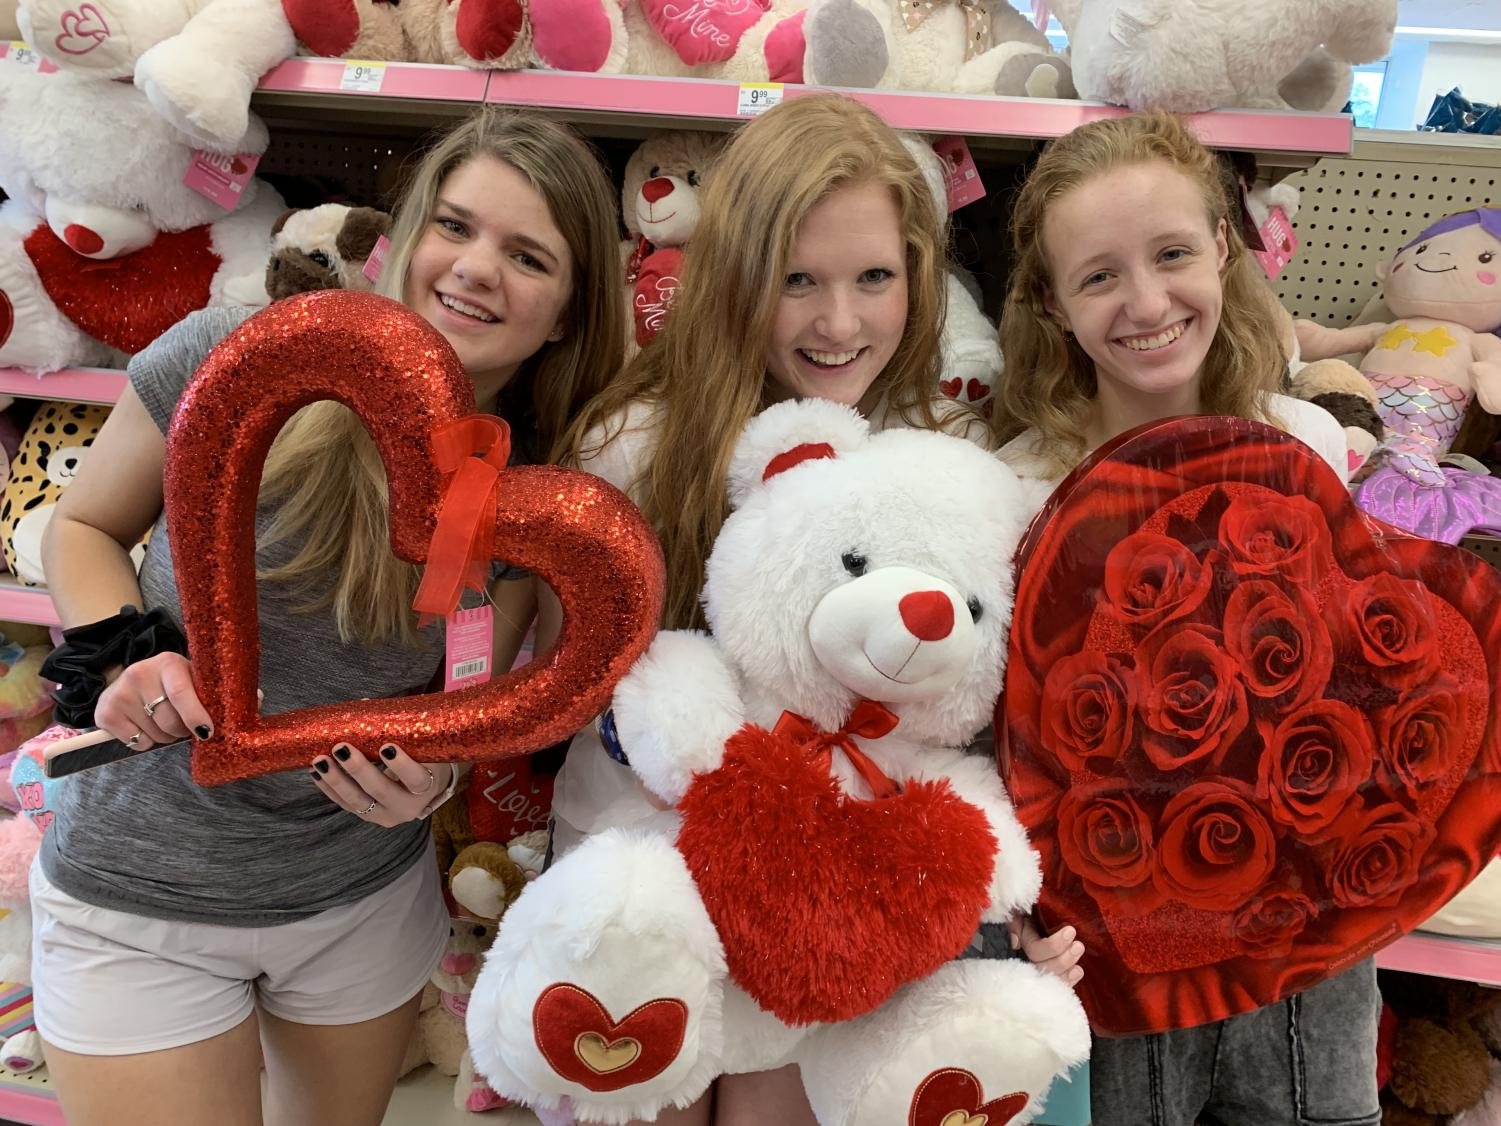 senior girls Abby Sympson and Jessica Puckett, and junior Lily Fields shop for Valentine's Day goodies.